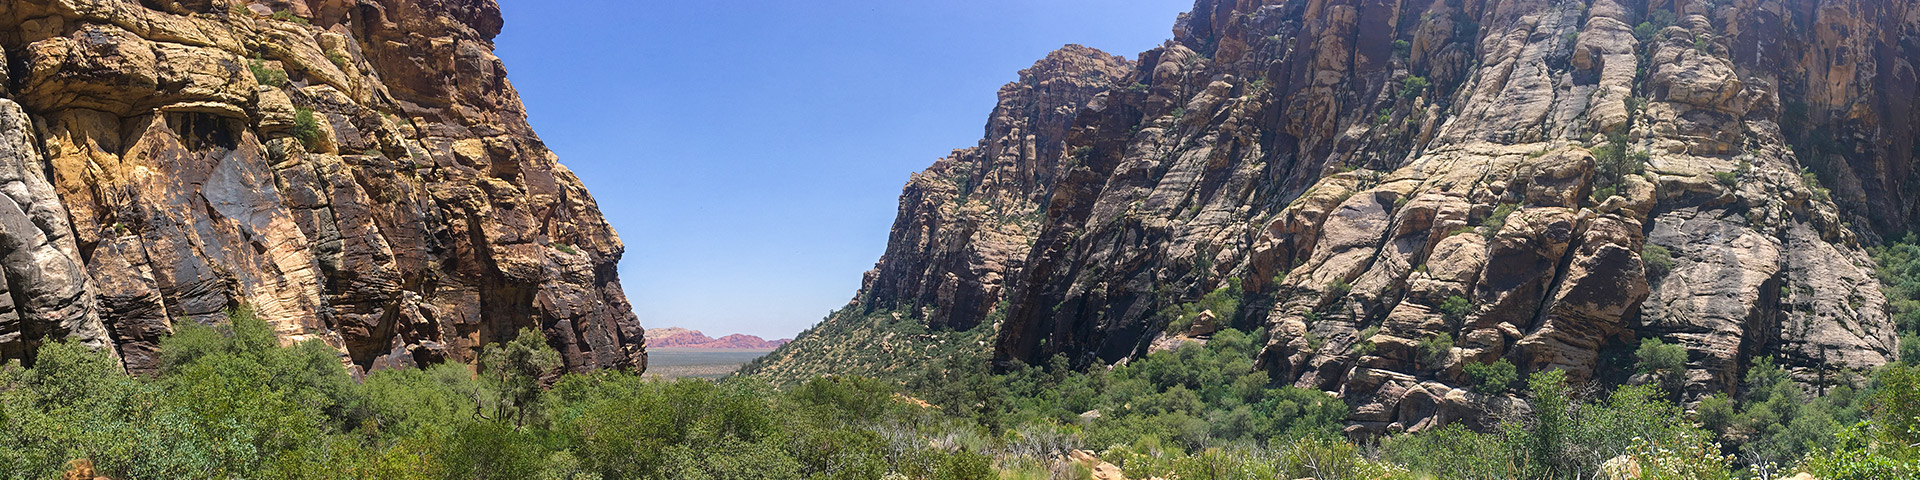 Panorama from the Icebox Canyon hike near Las Vegas, Nevada